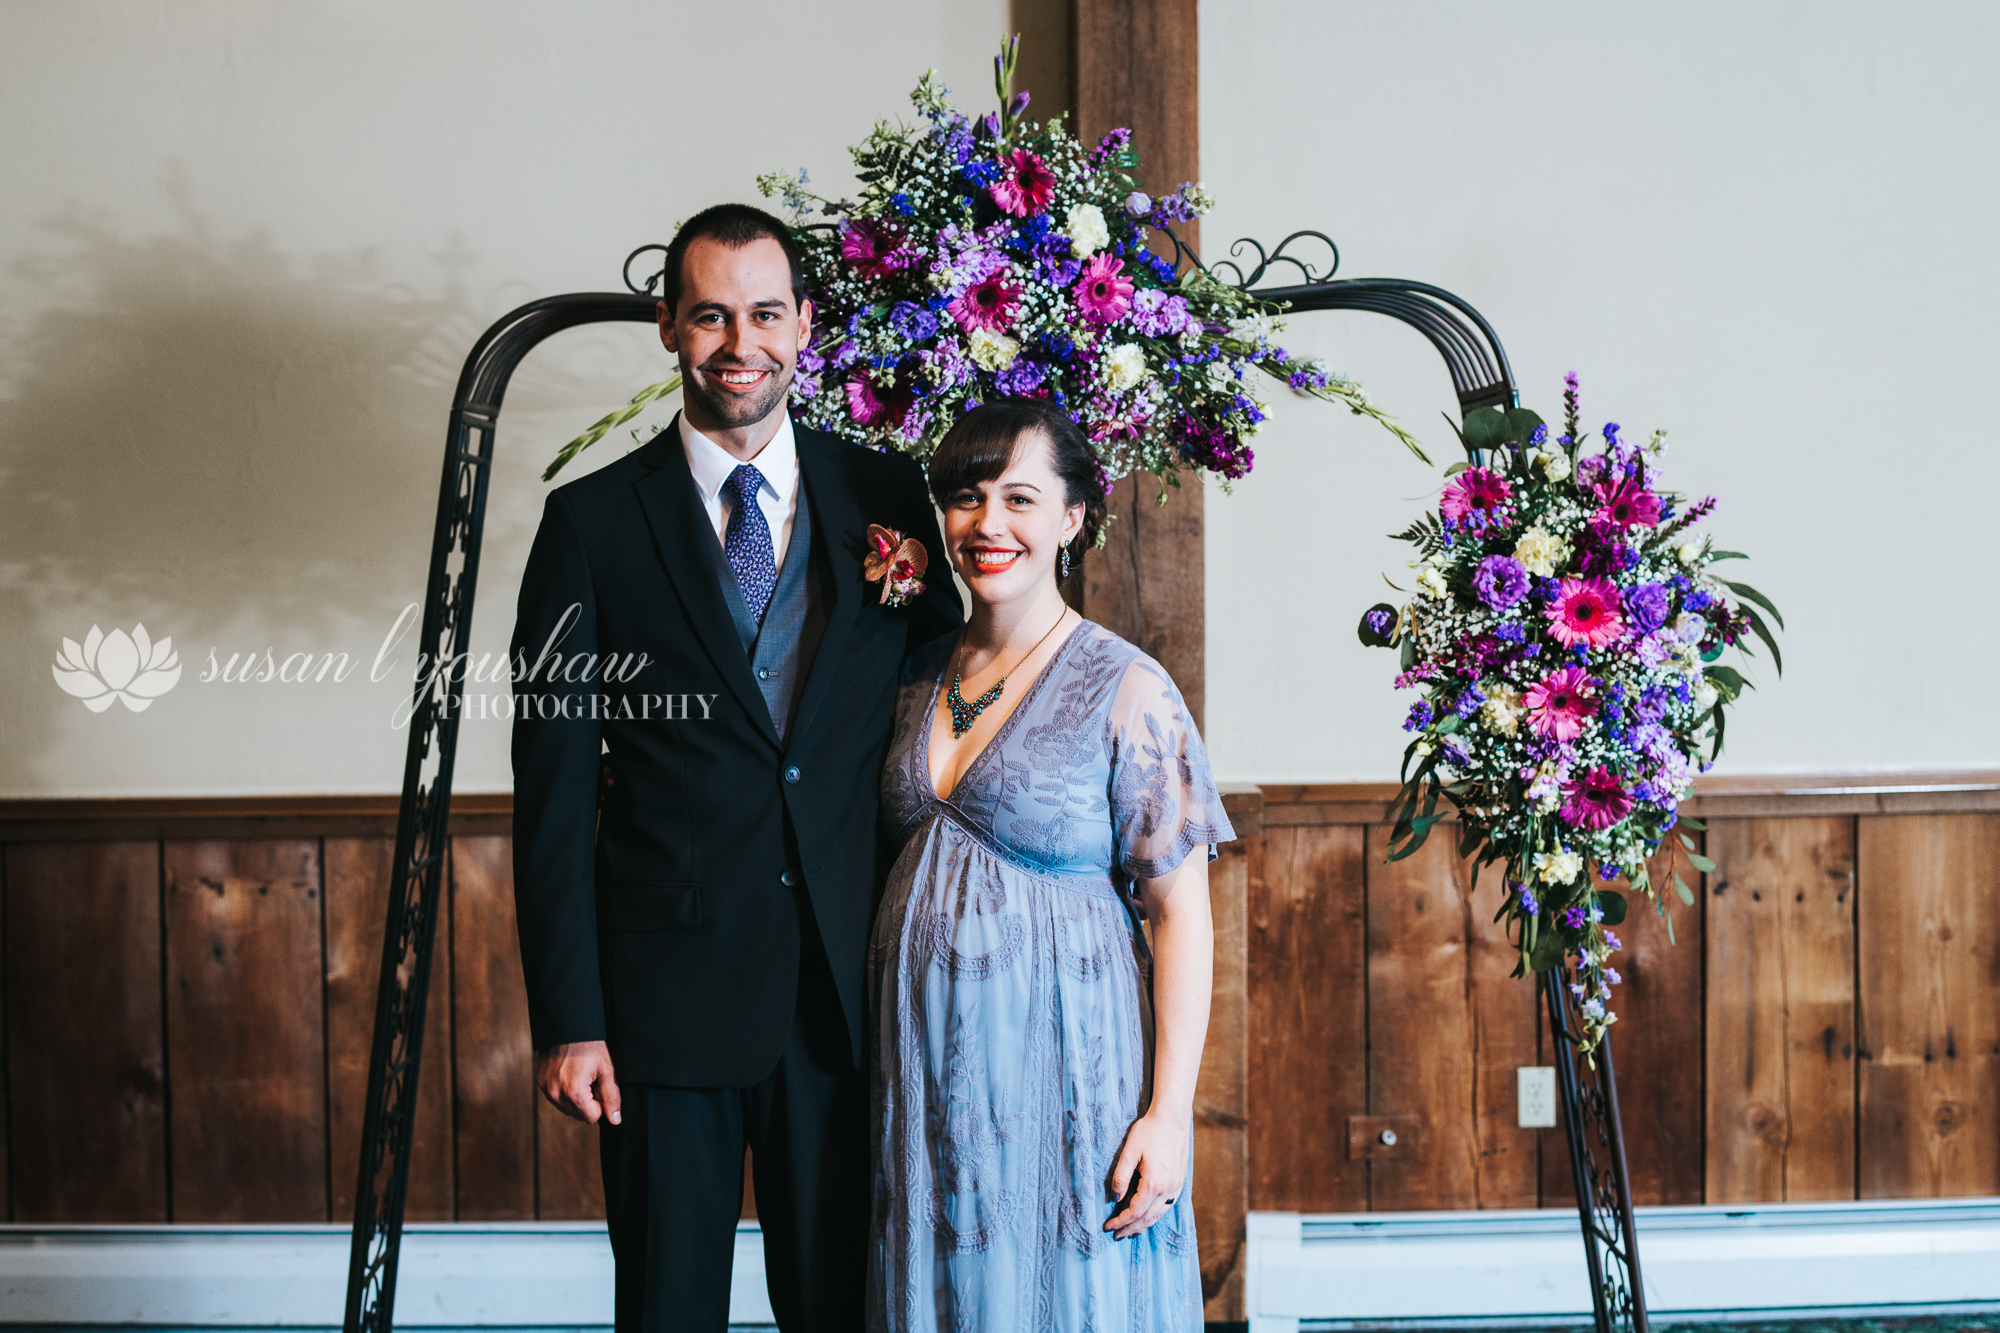 Adena and  Erik Wedding 05-17-2019 SLY Photography-59.jpg